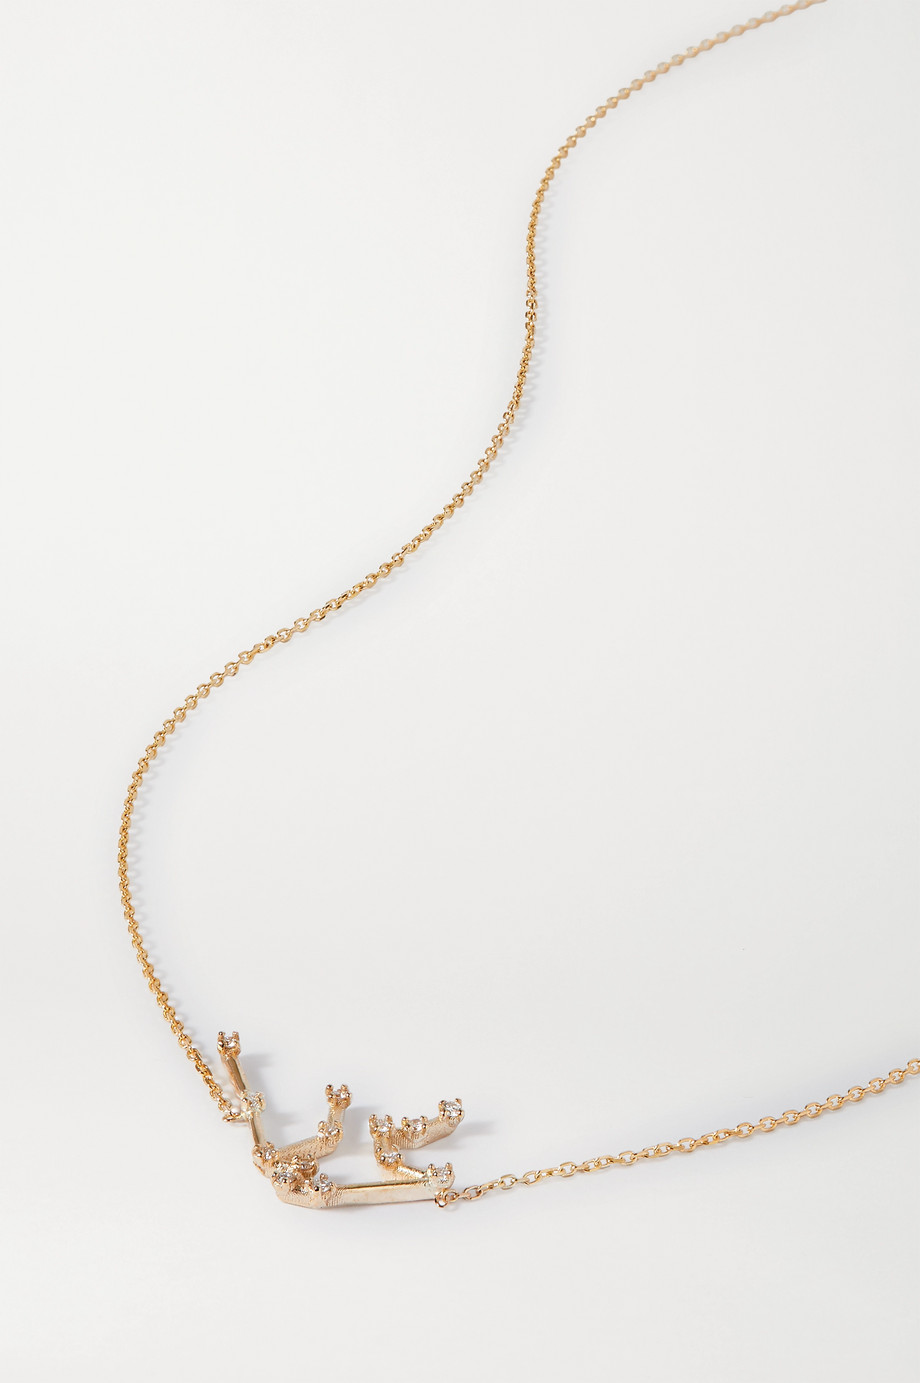 SARAH & SEBASTIAN Celestial Aquarius 10-karat gold diamond necklace